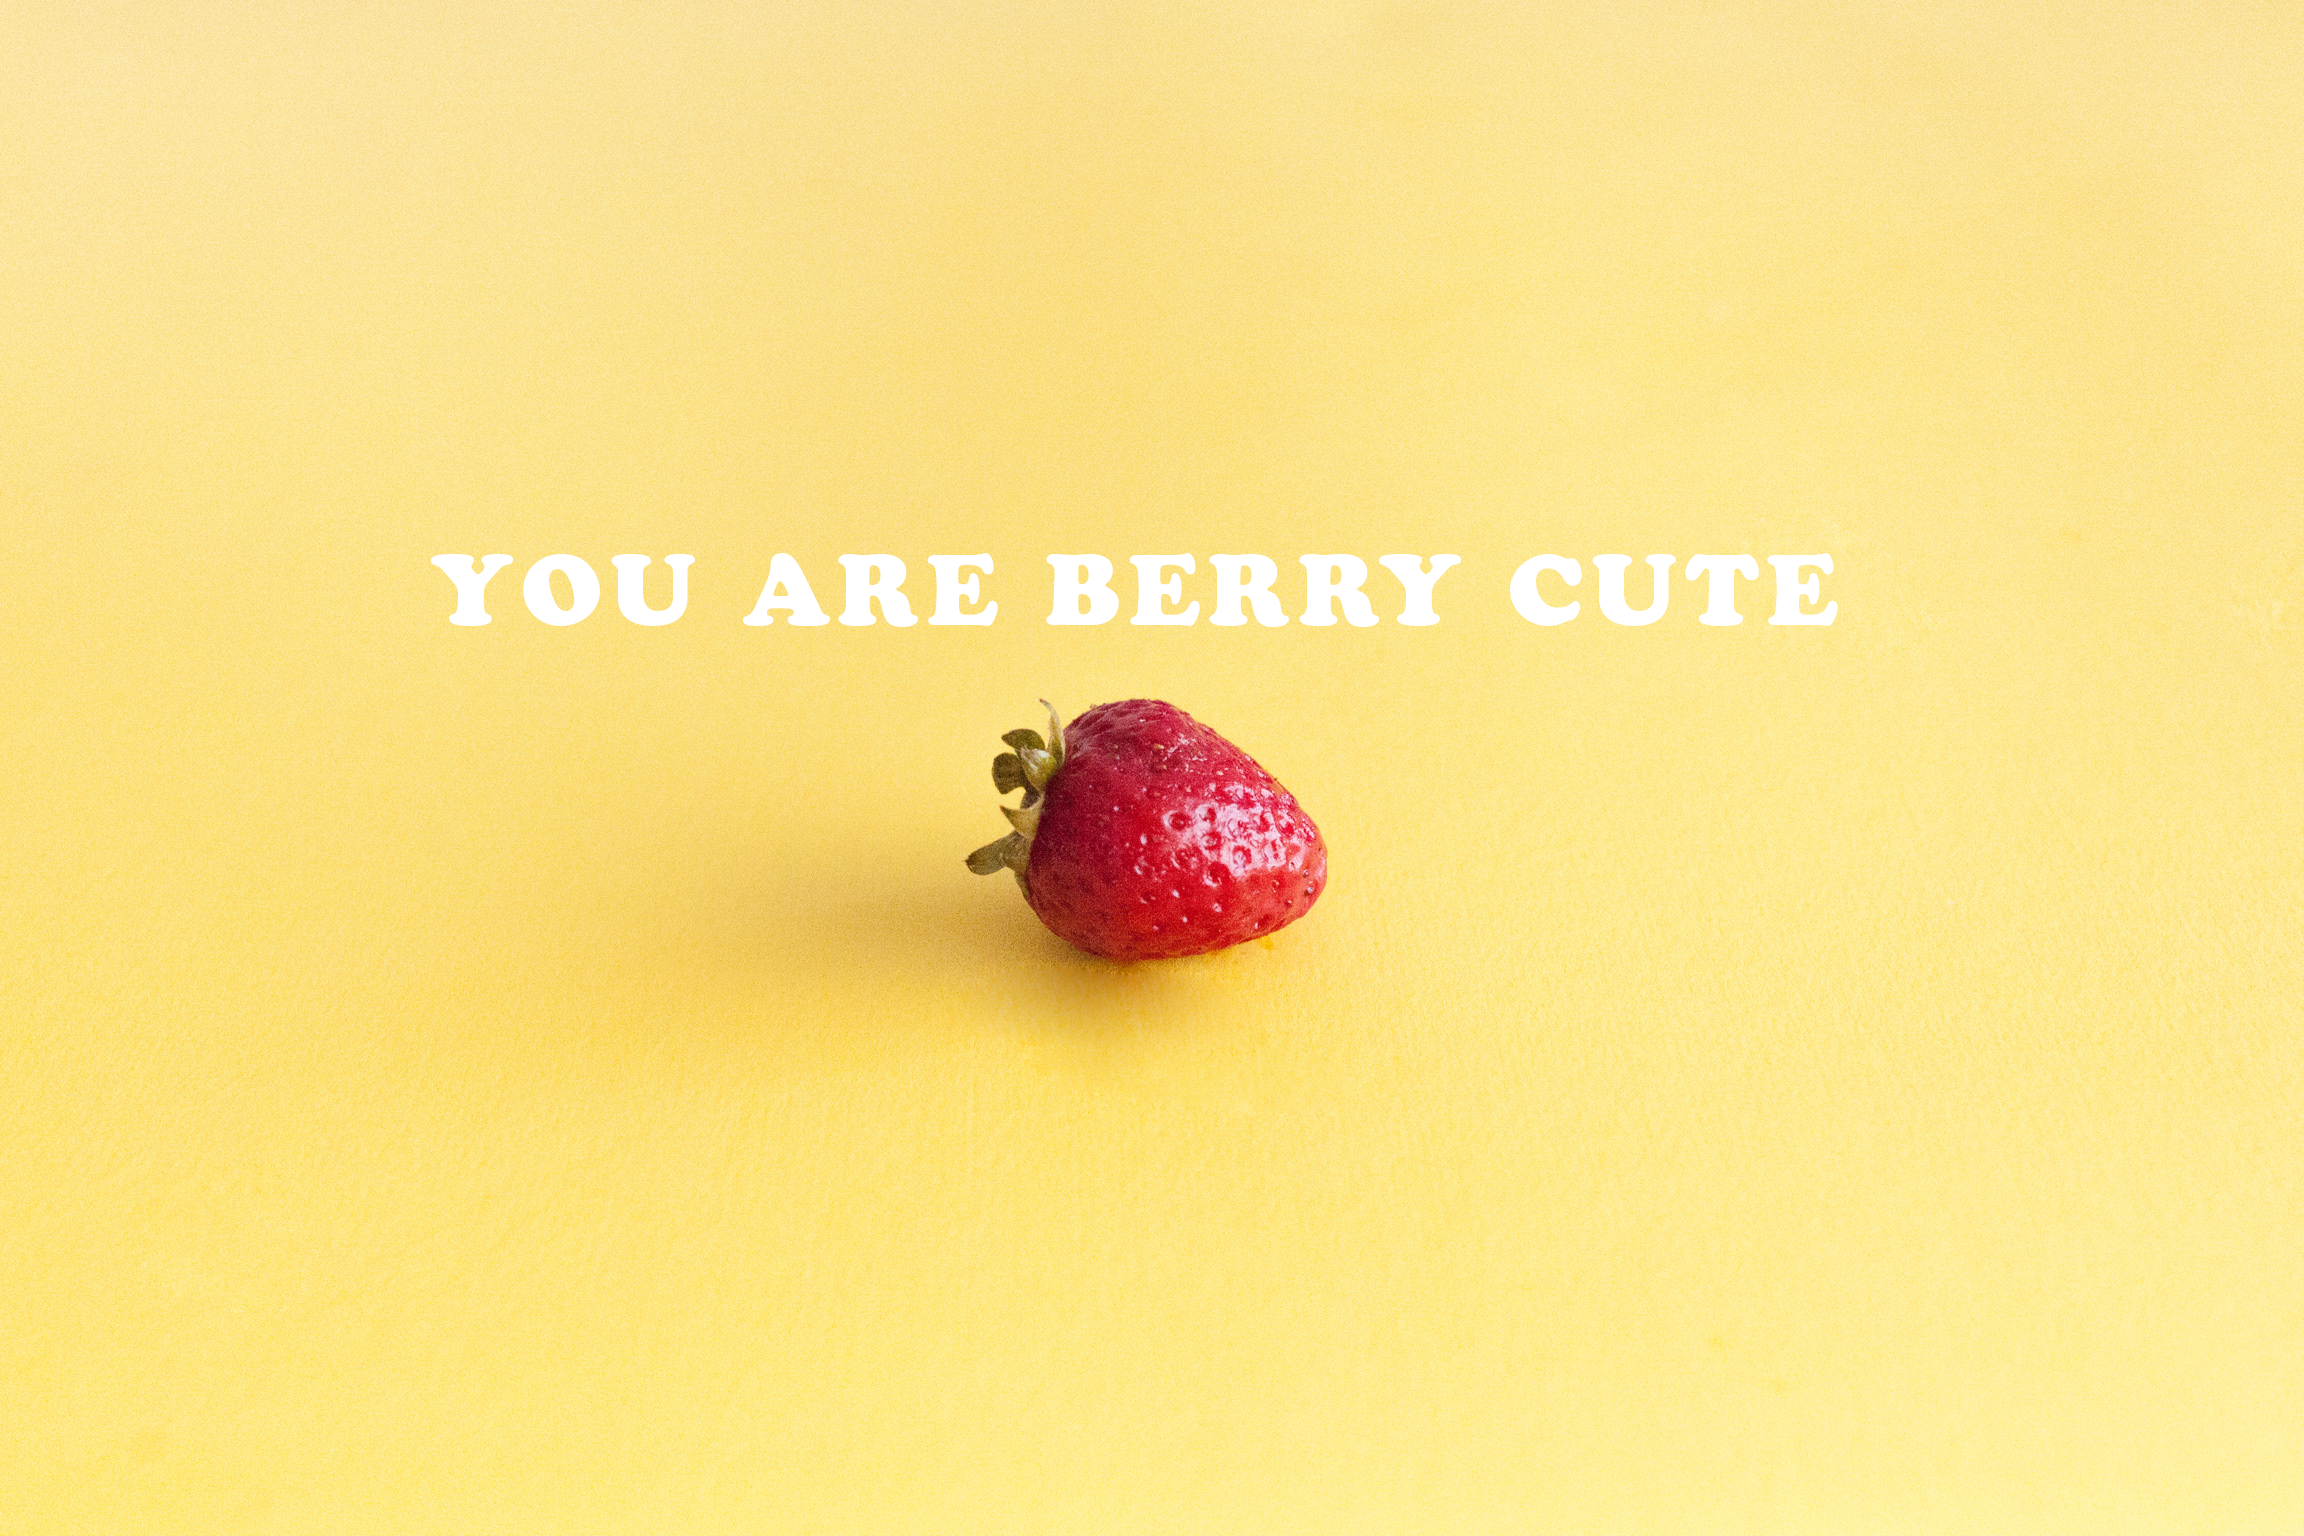 StrawberryWallpaper.png